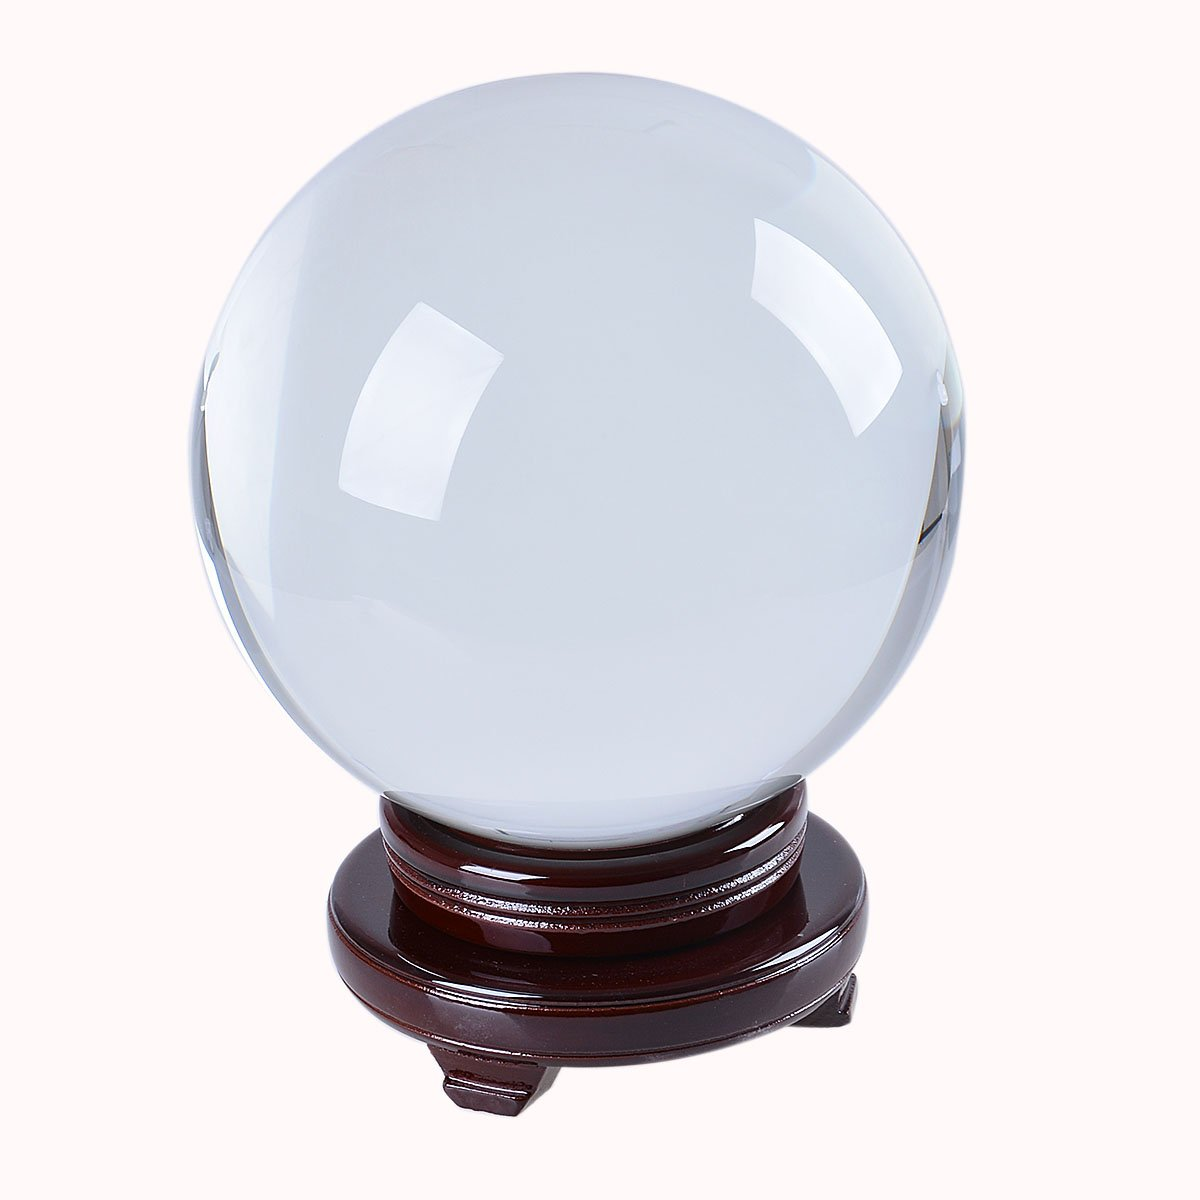 LONGWIN Huge Clear Divination Crystal Ball 200mm (8 Inch) Glass Sphere Free Wooden Stand Home Decoration Ornaments by LONGWIN